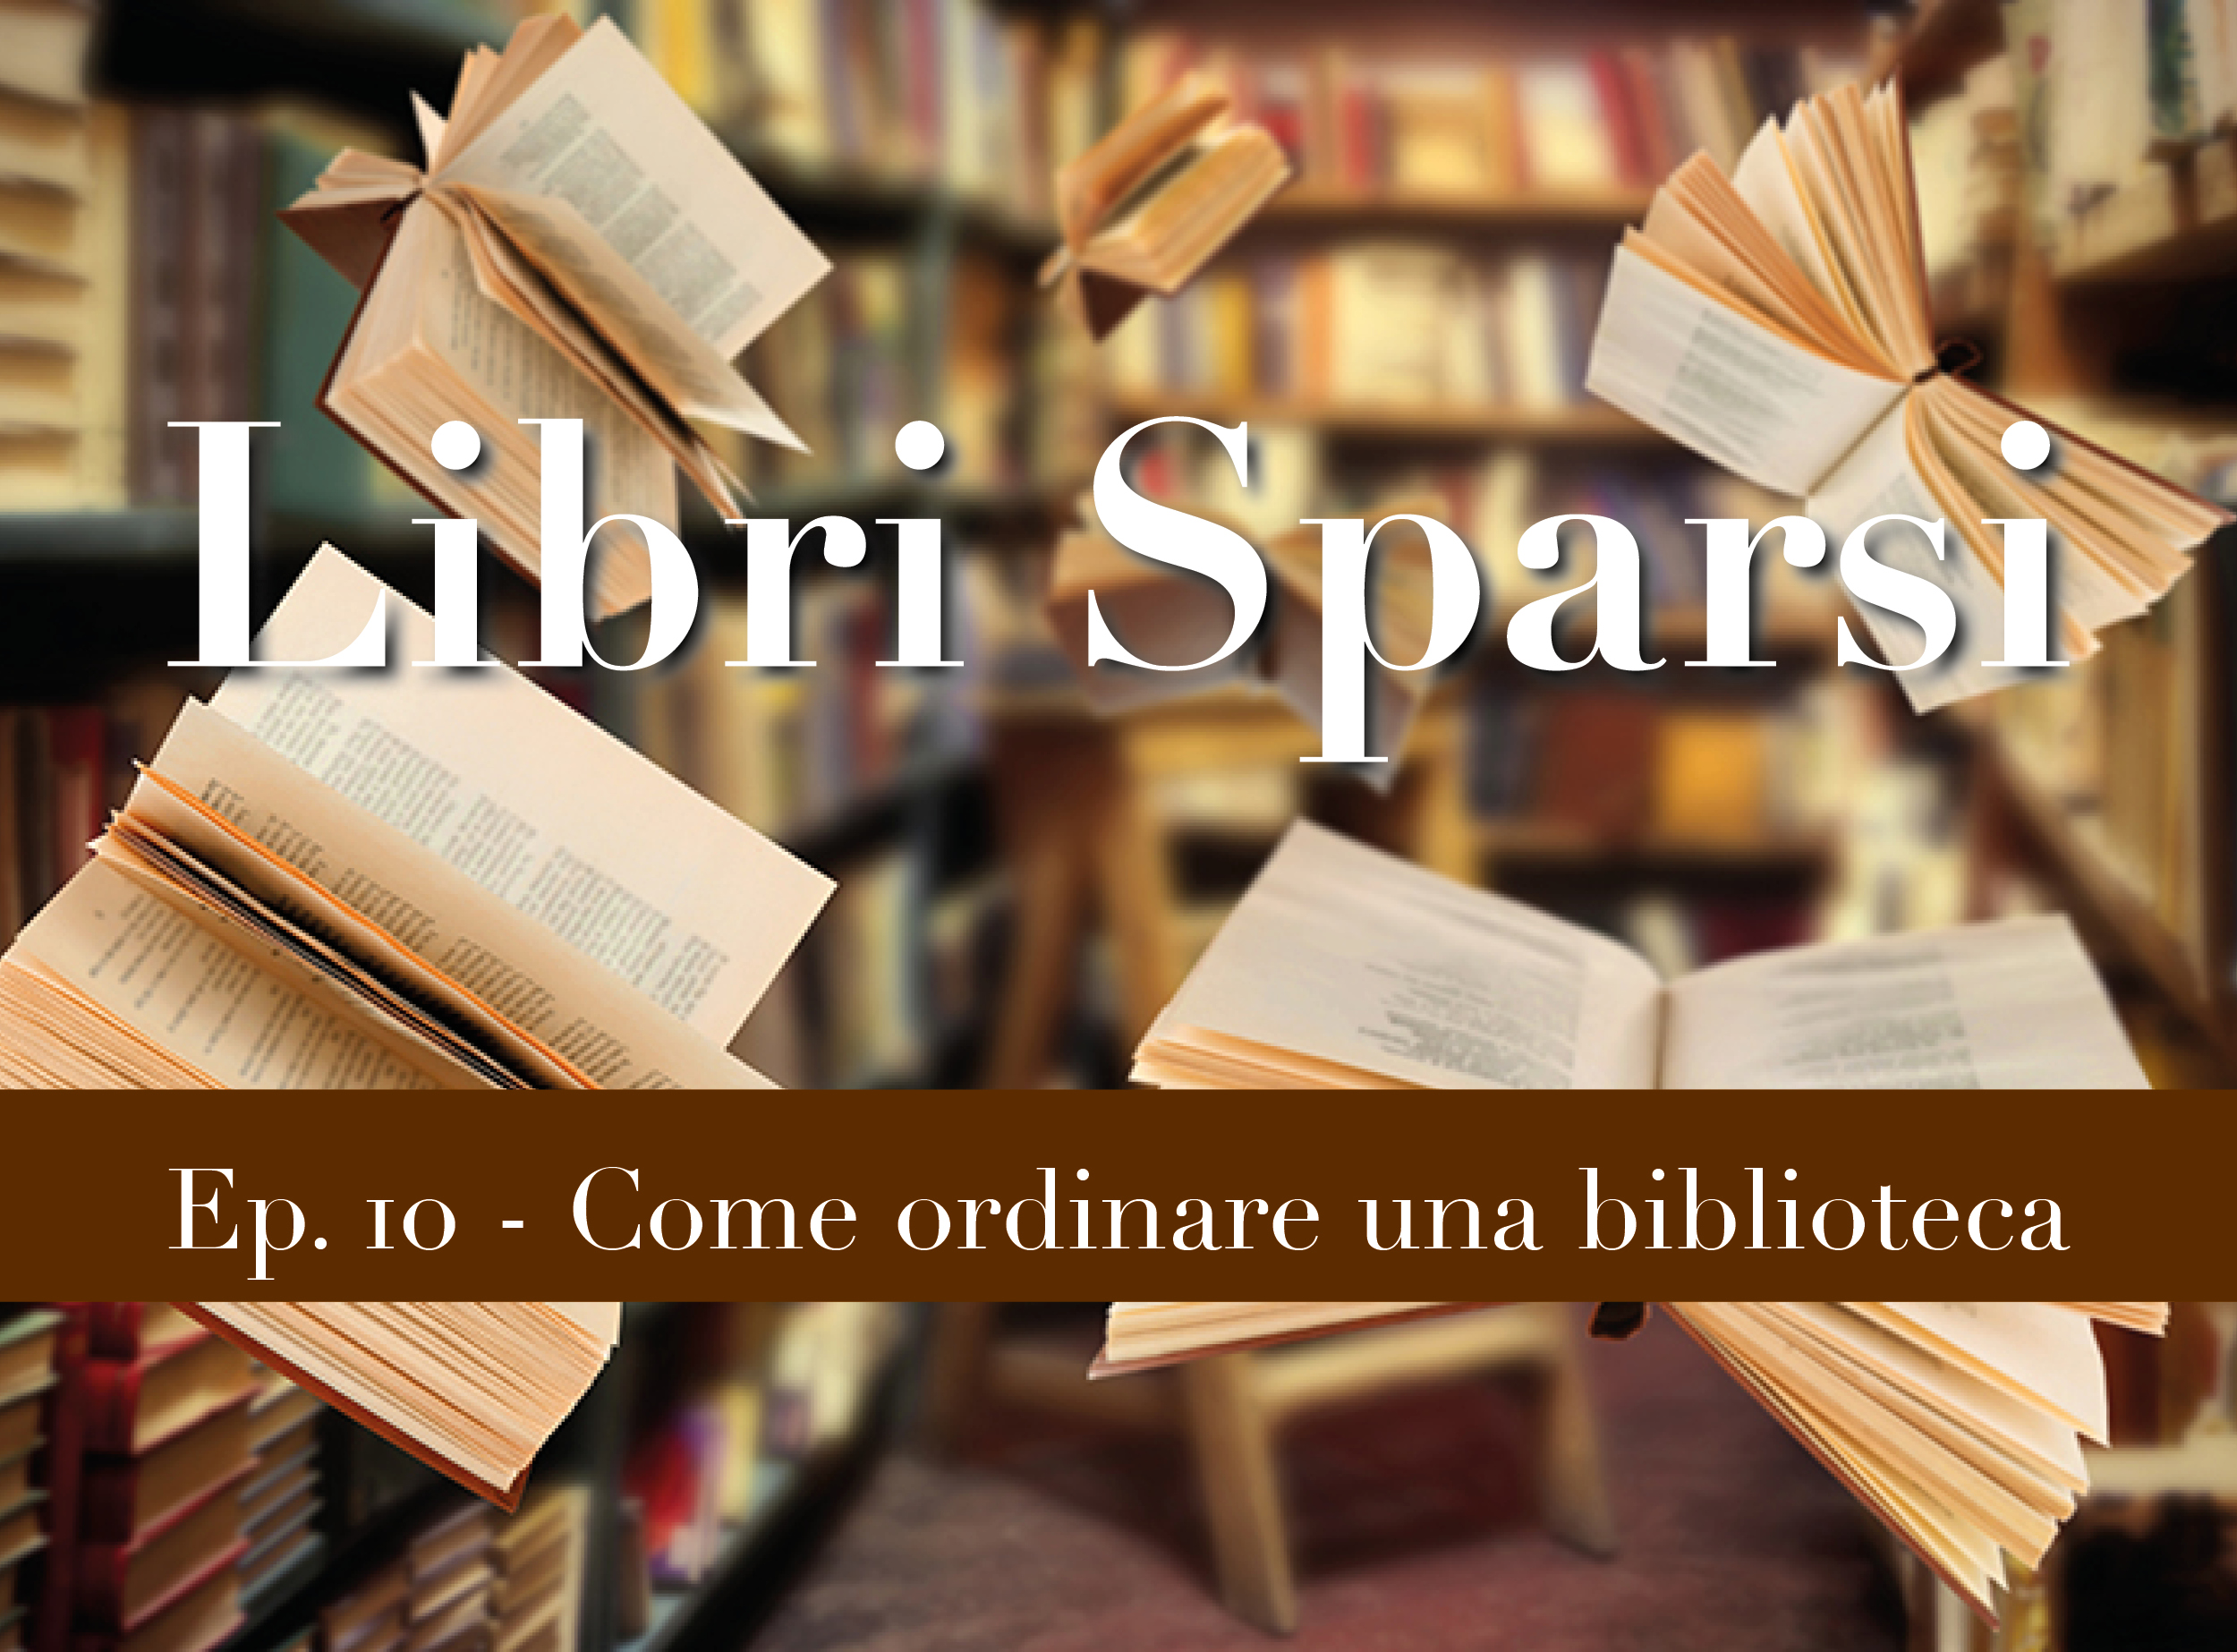 Ep. 10 - Come ordinare una biblioteca